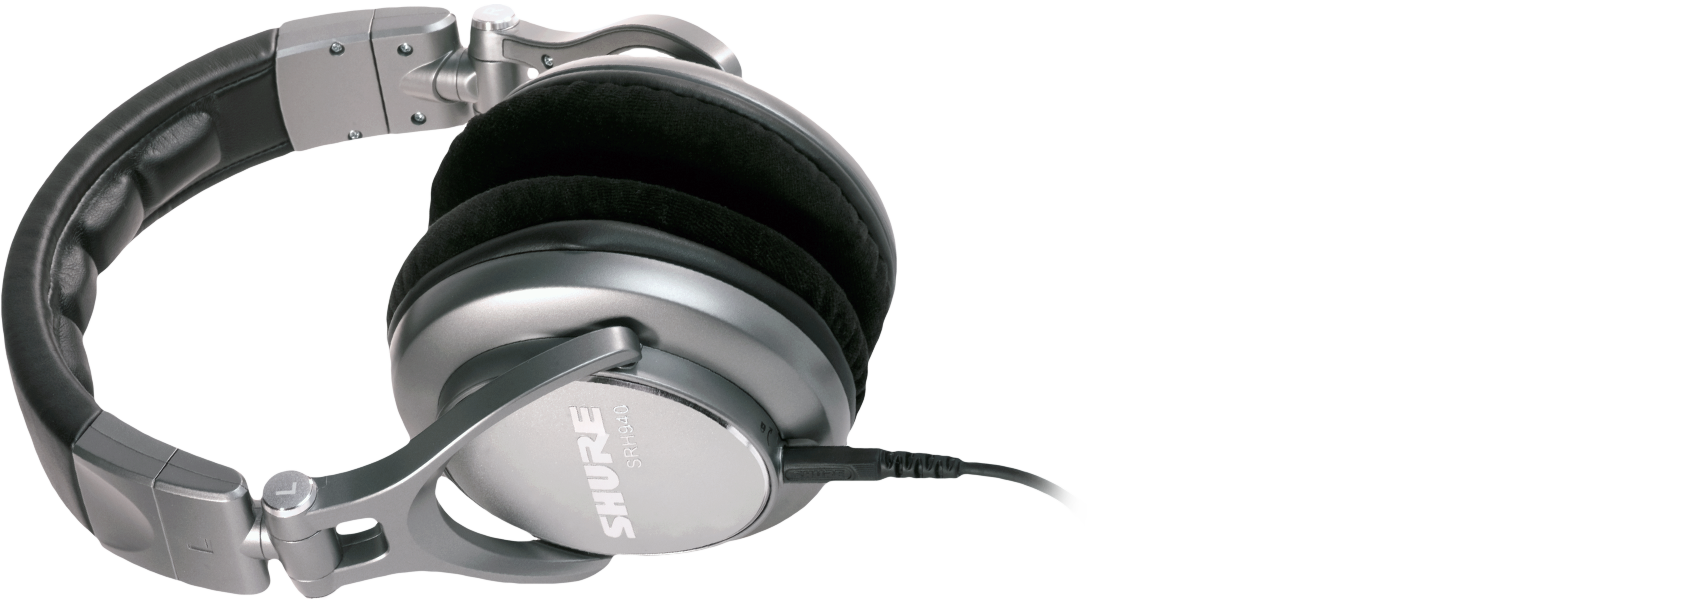 Illustration Shure SRH940 Professional Reference Headphones